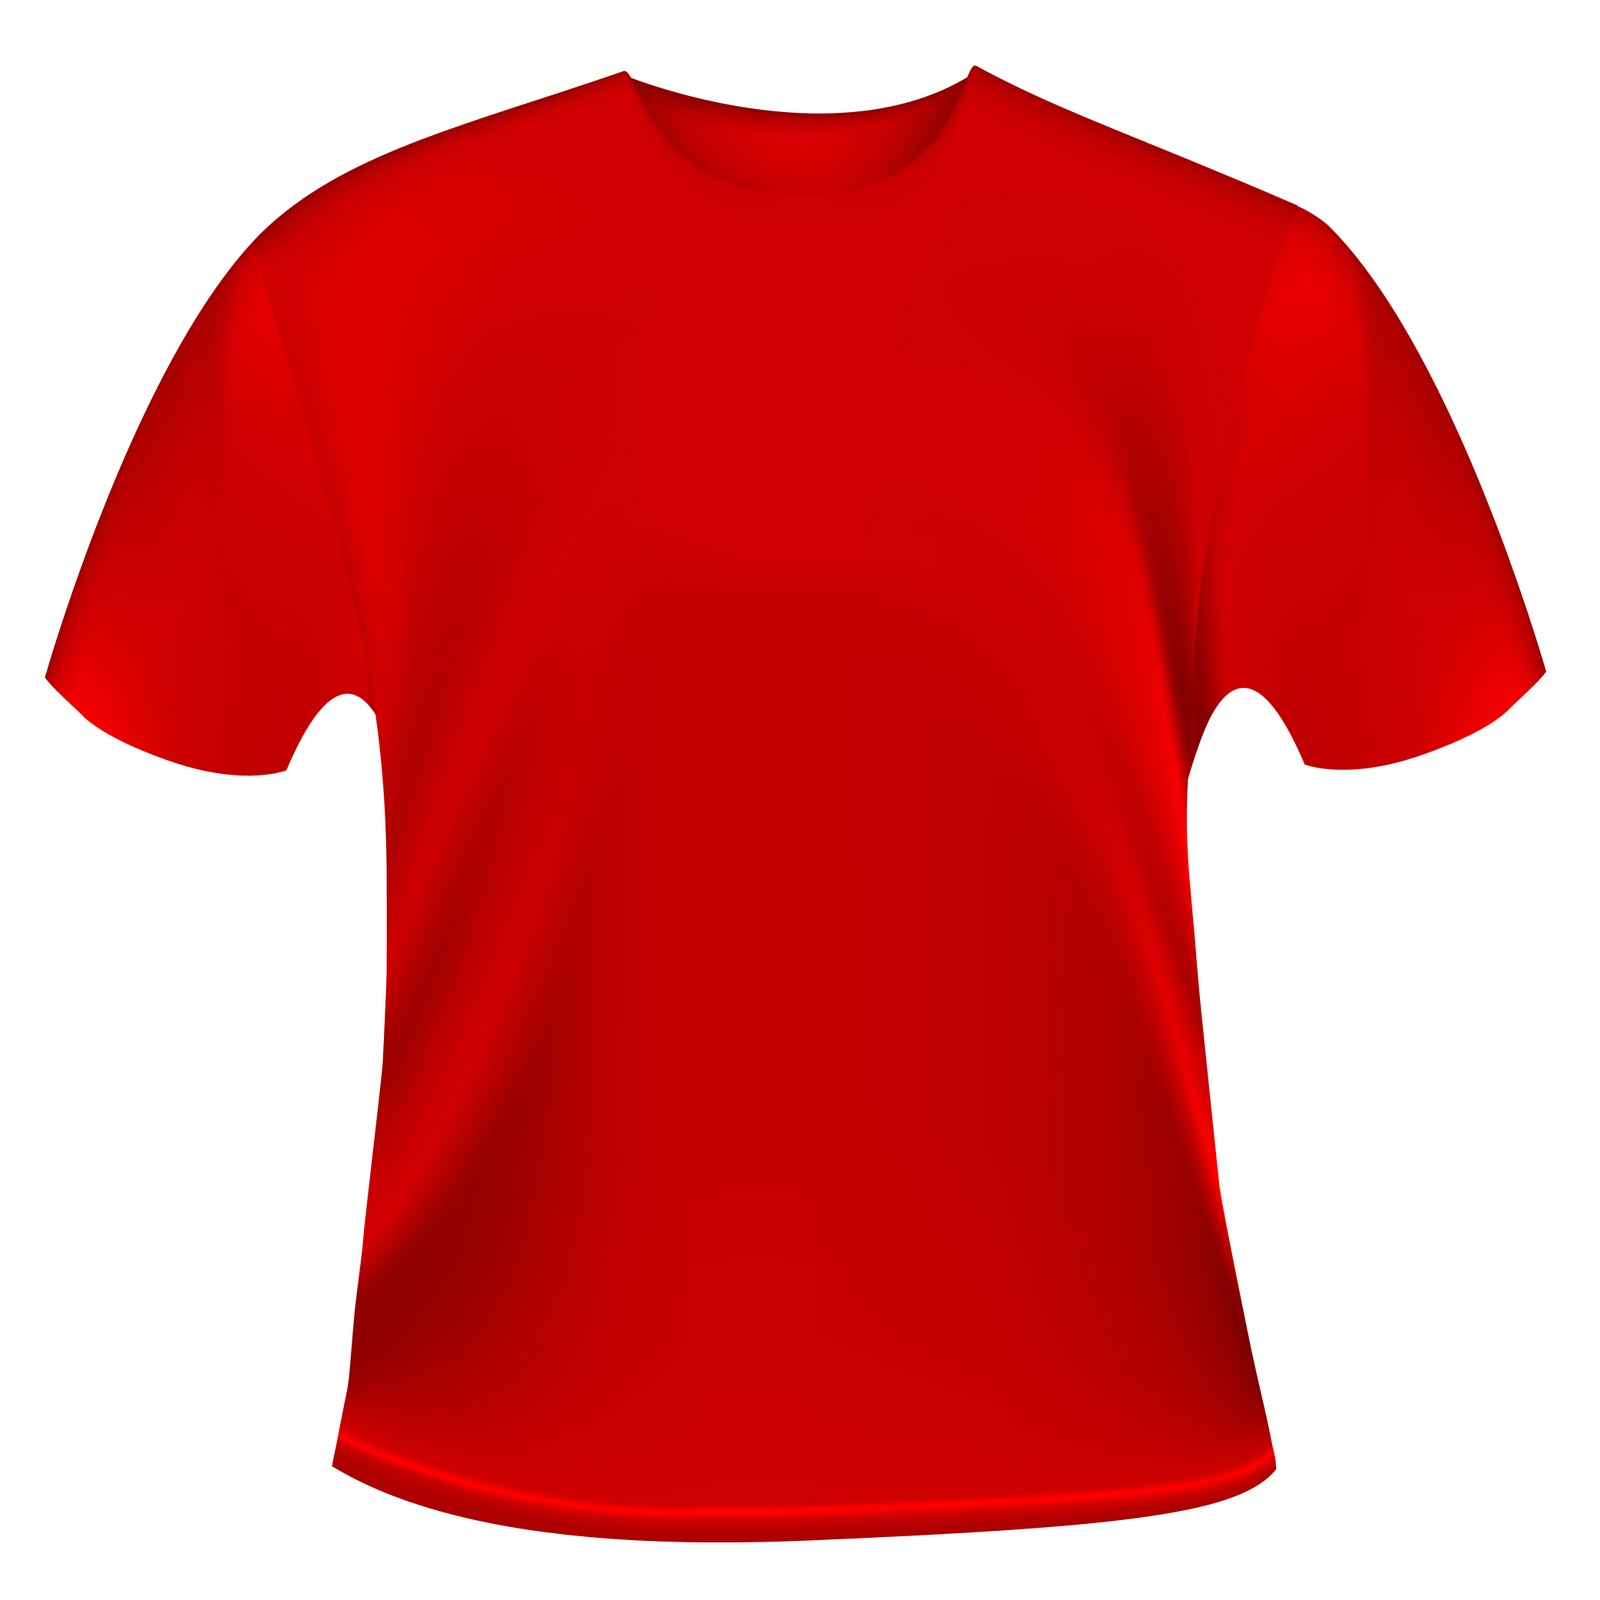 Red vector t-shirt template - ClipArt Best - ClipArt Best